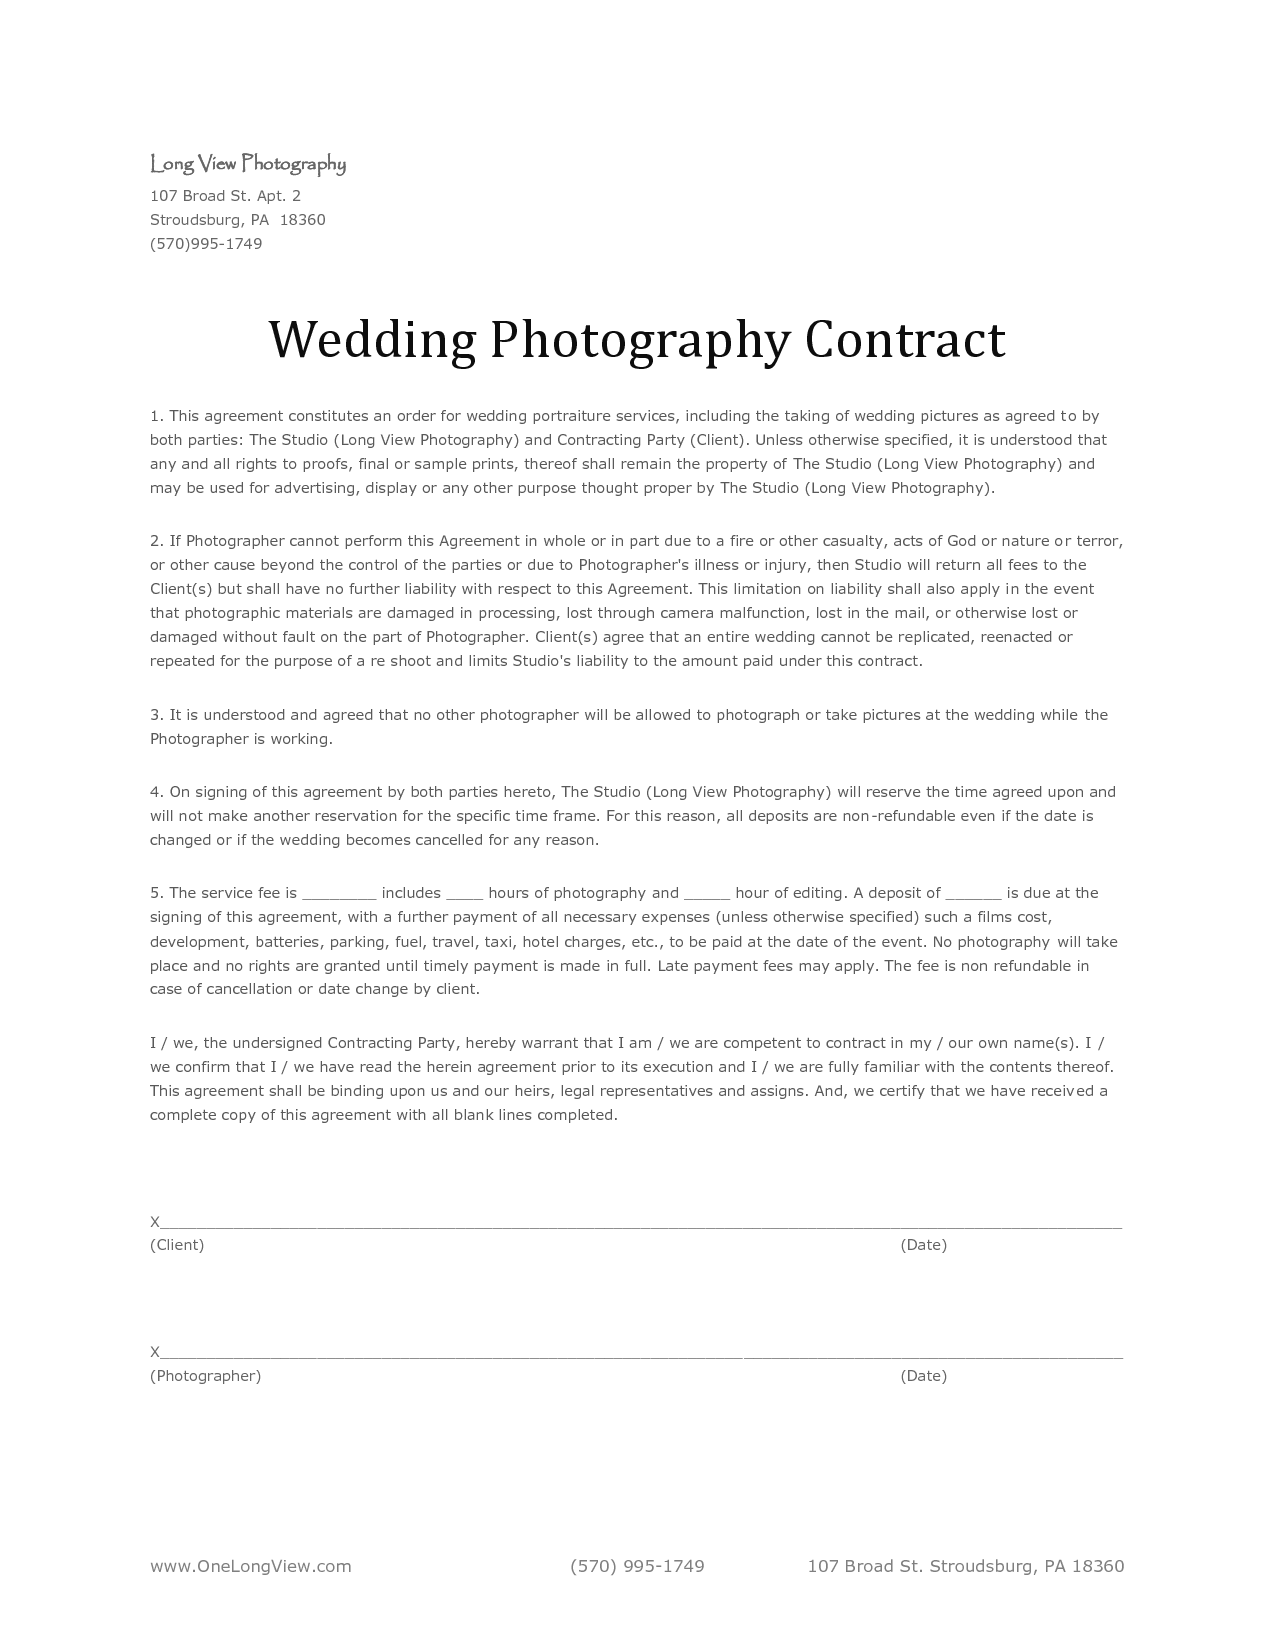 wedding photography agreement